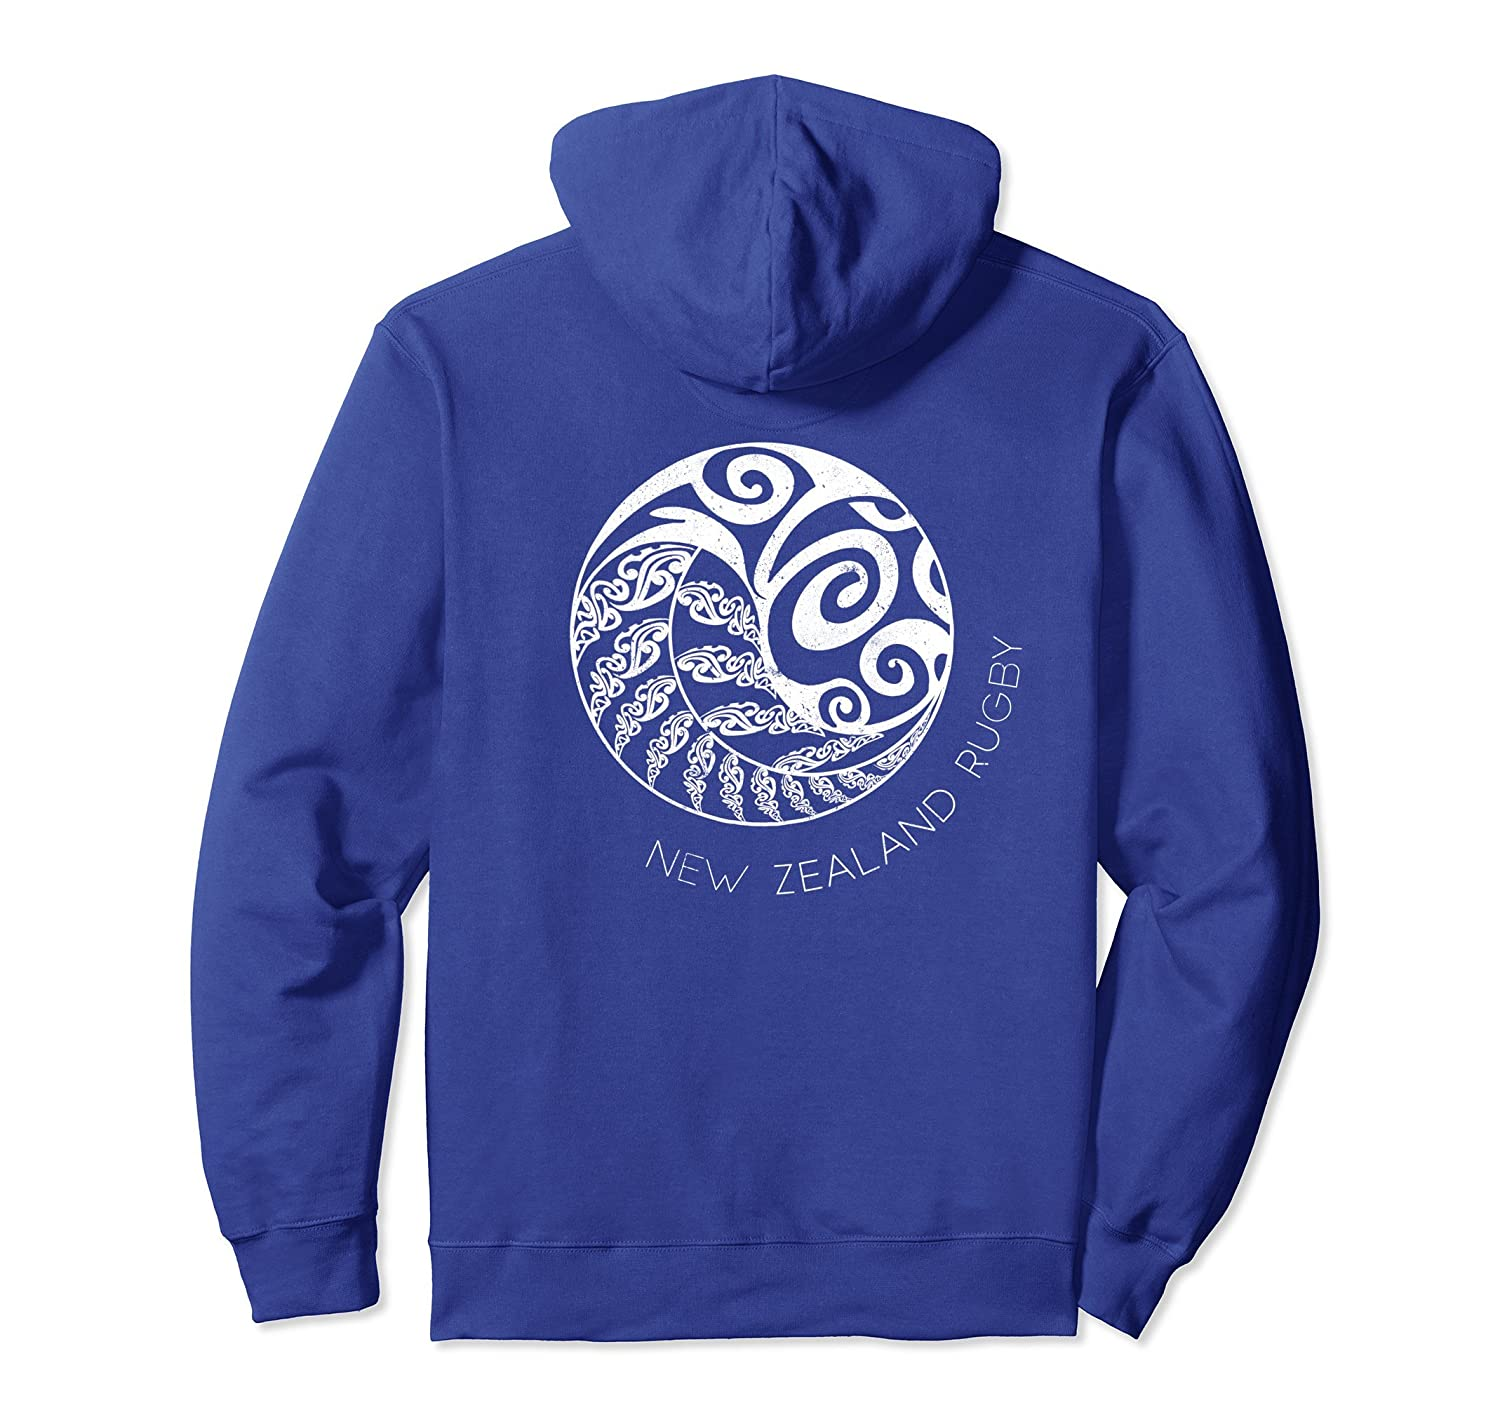 New Zealand Rugby Hoodie Back, Maori Inspired Kiwi & Fern-AZP